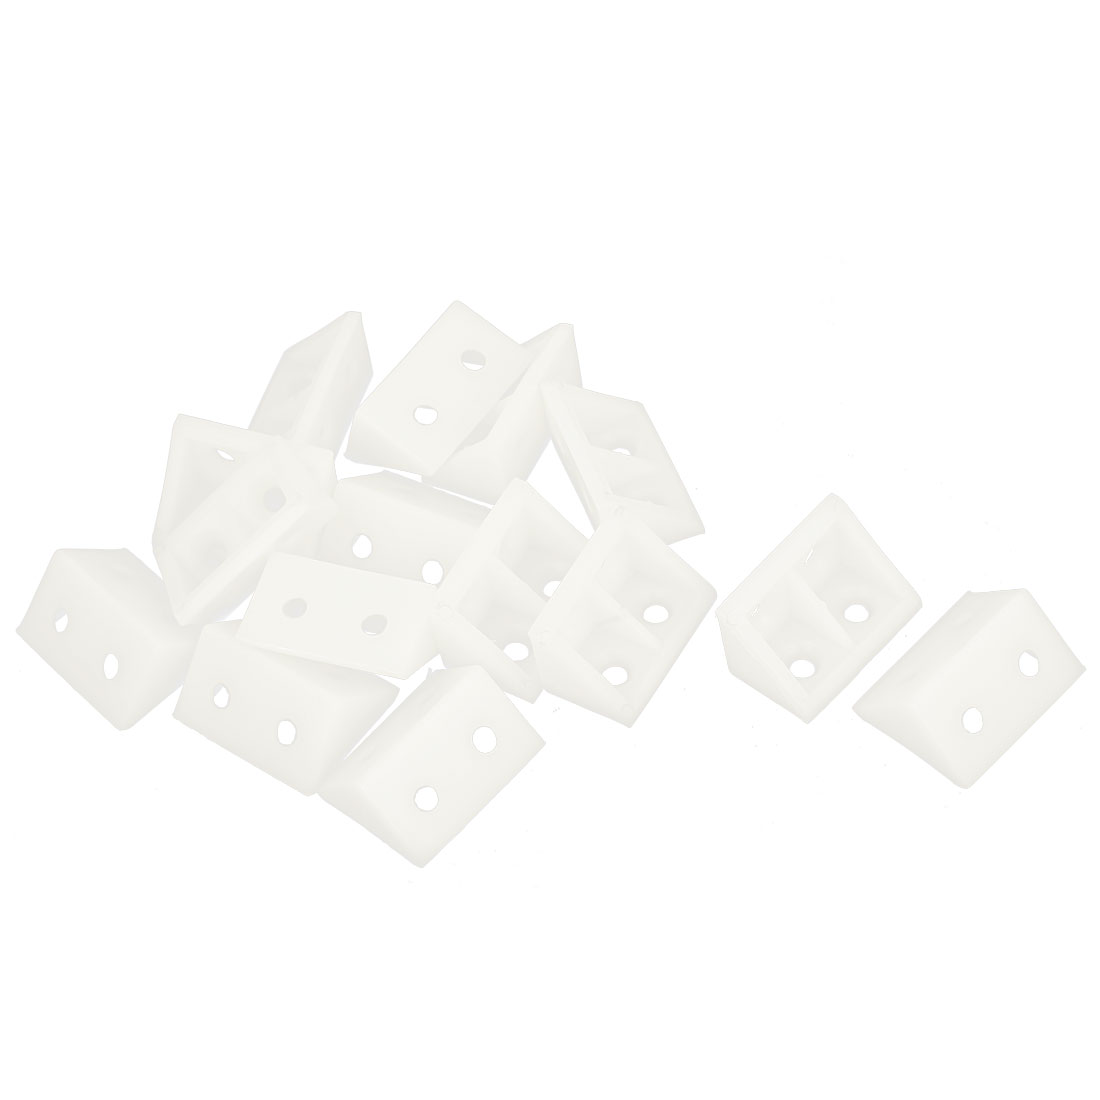 Cabinet Shelf 33 x 19 x 19mm Plastic Corner Bracket Angle Brace White 15pcs